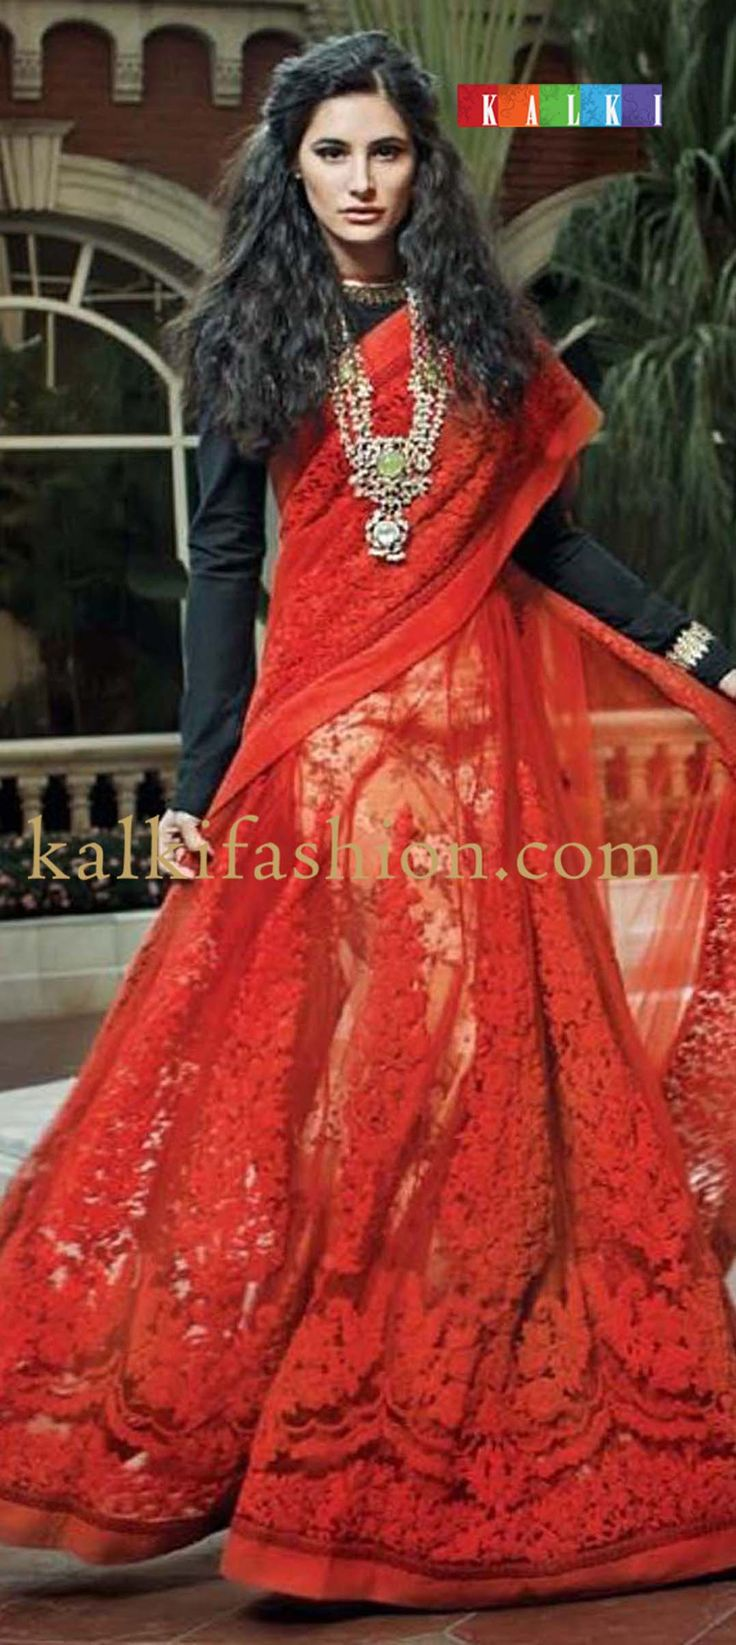 http://www.kalkifashion.com/designers/sabyasachi.html lakme-fashion-week-2013-collection-by-sabyasachi